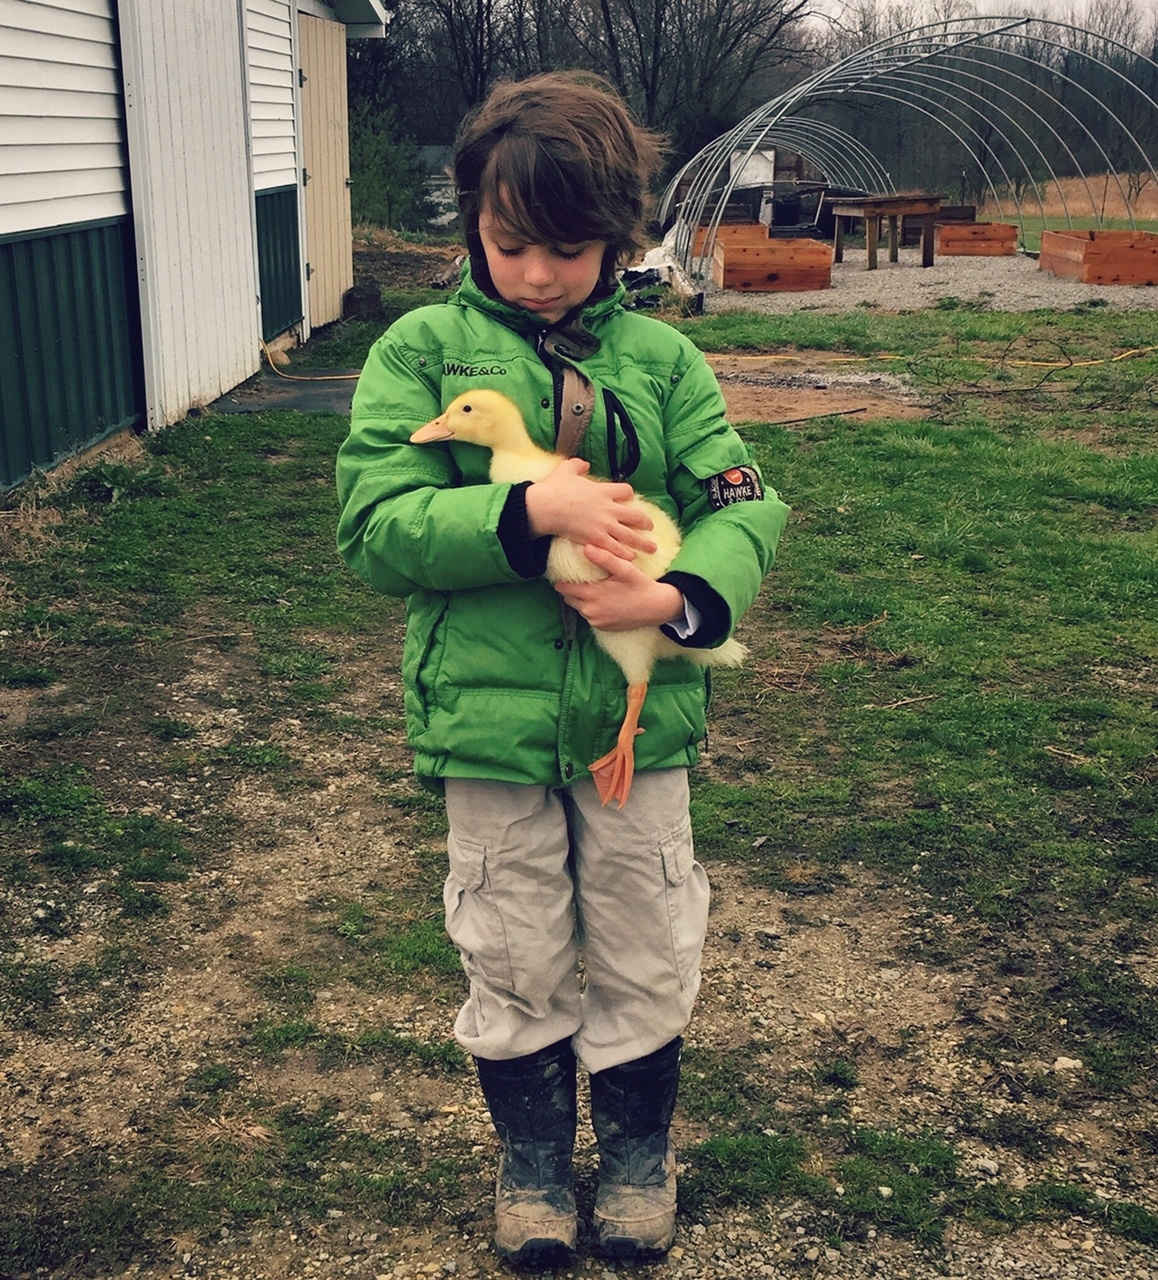 Boy and Duckling- Kathryn Proto Photography